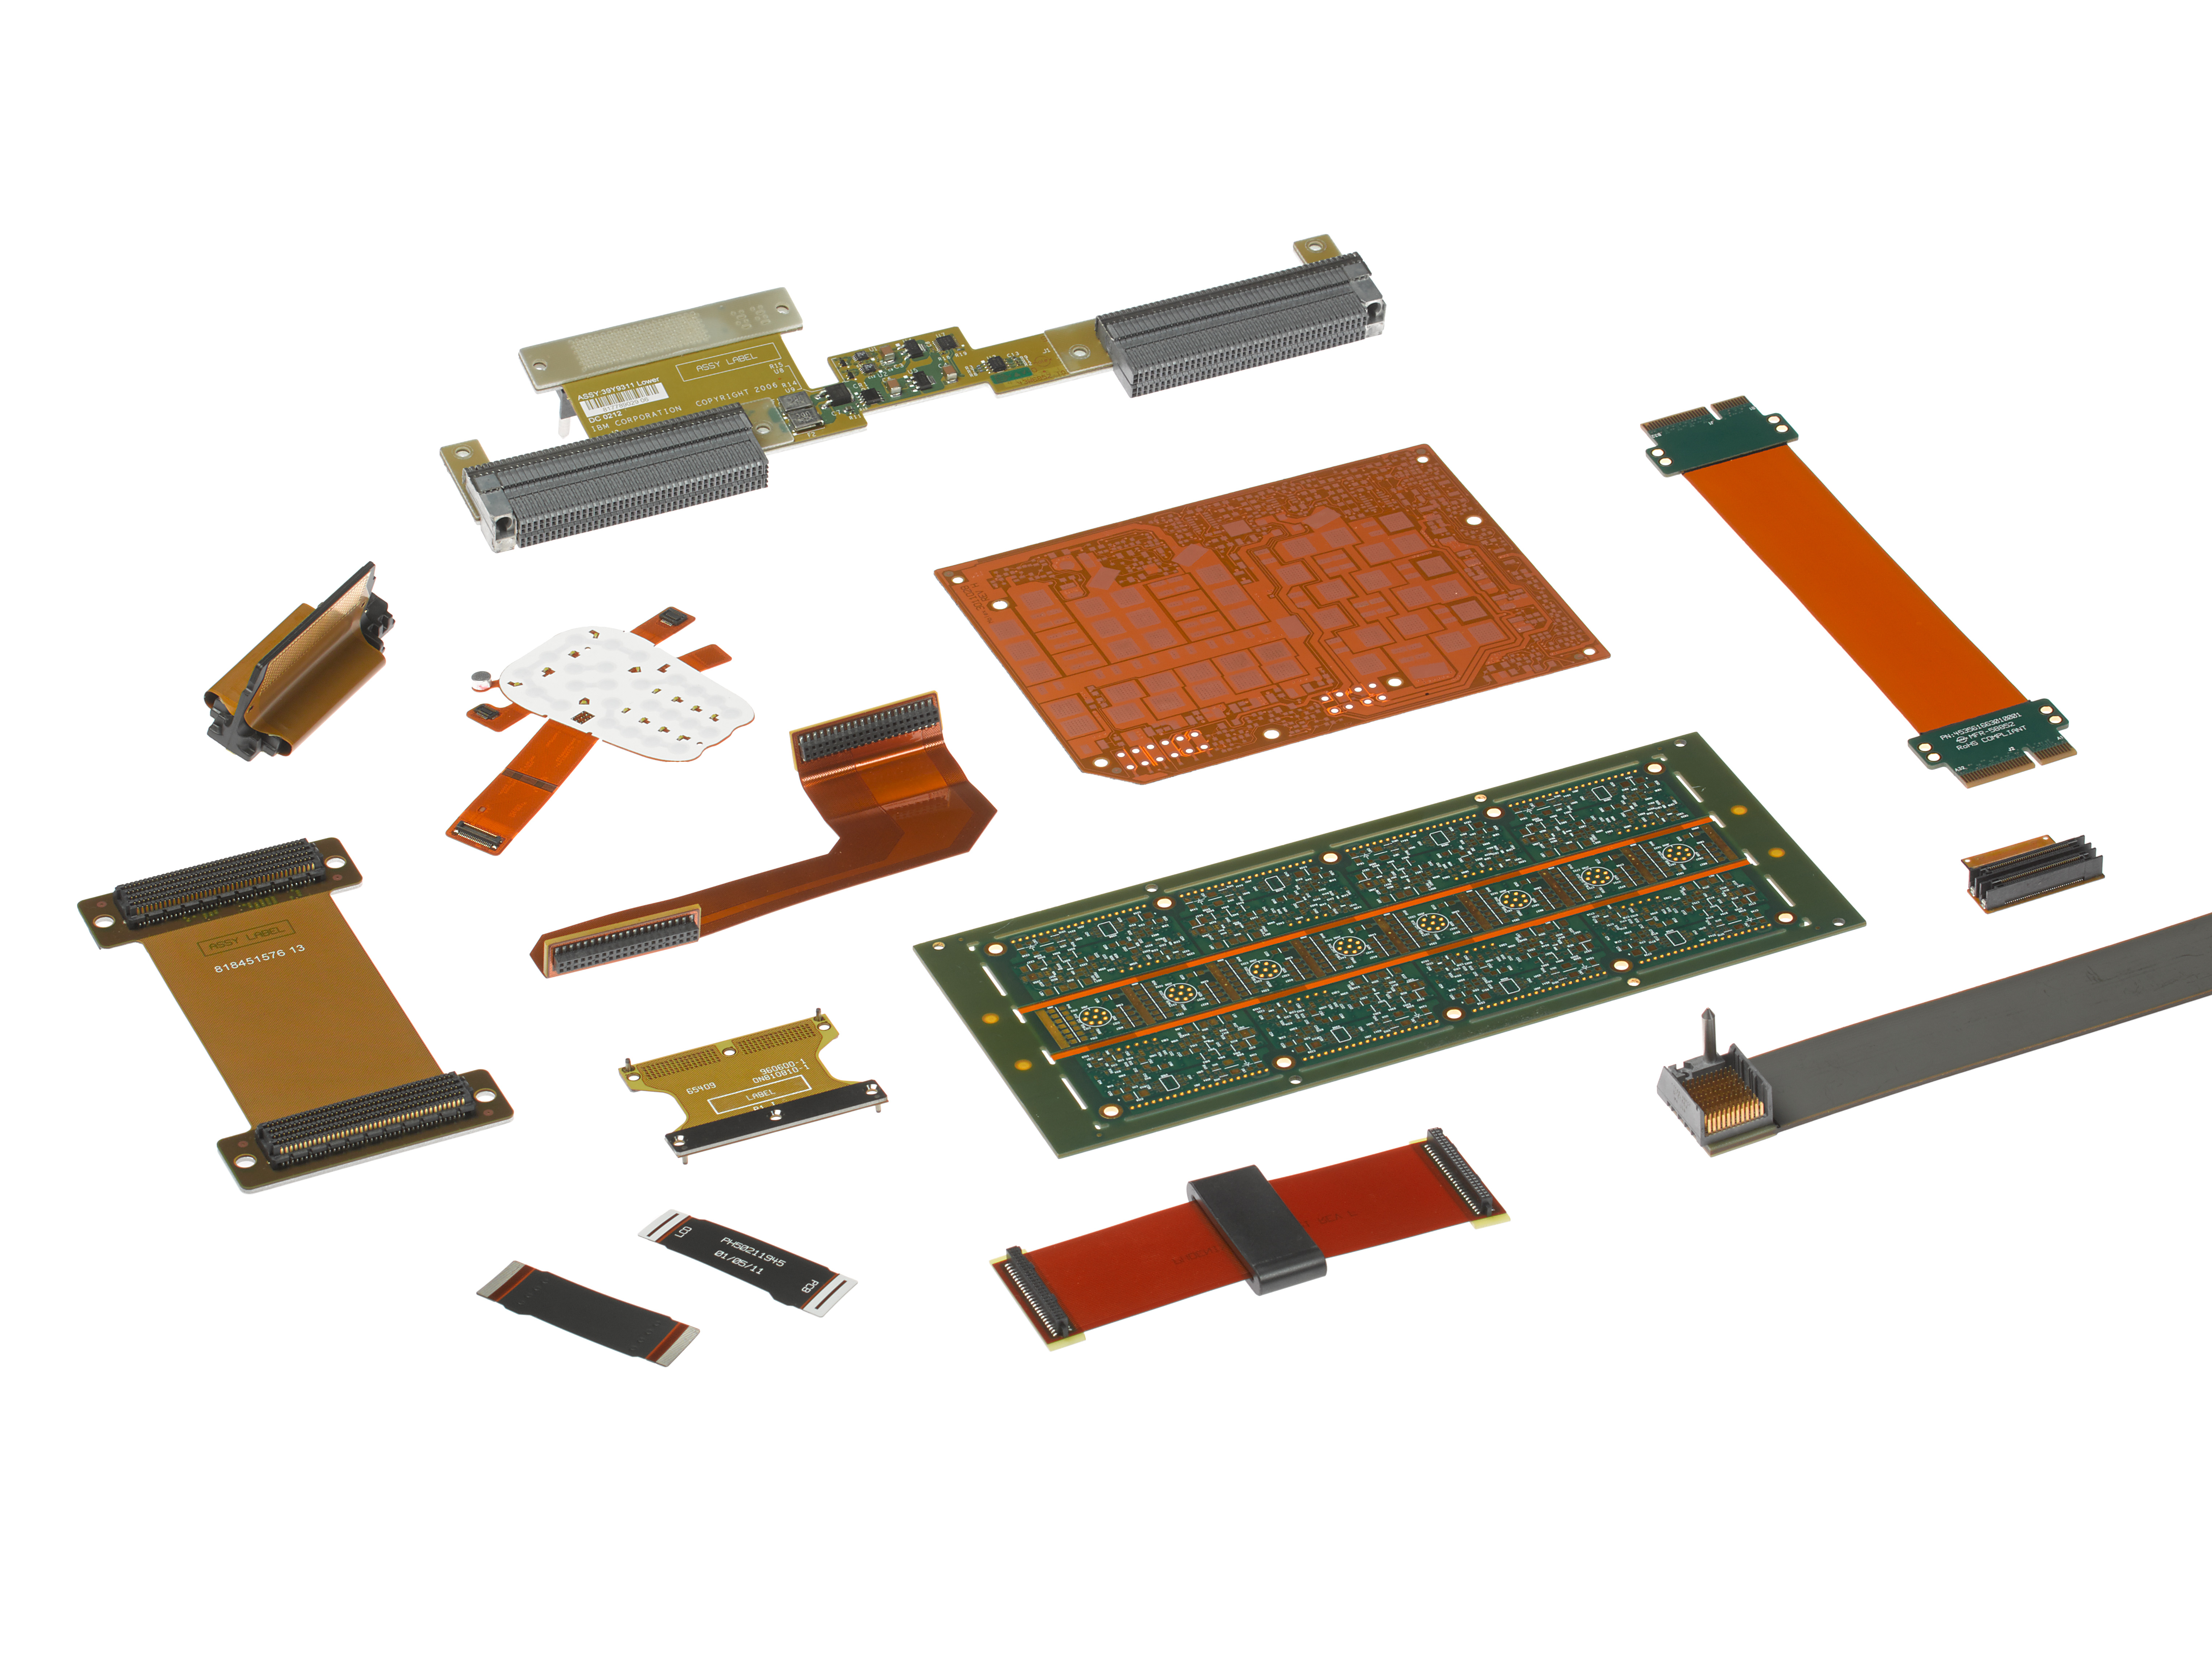 Flexible 3D Circuits Power Medical Devices - The Connector